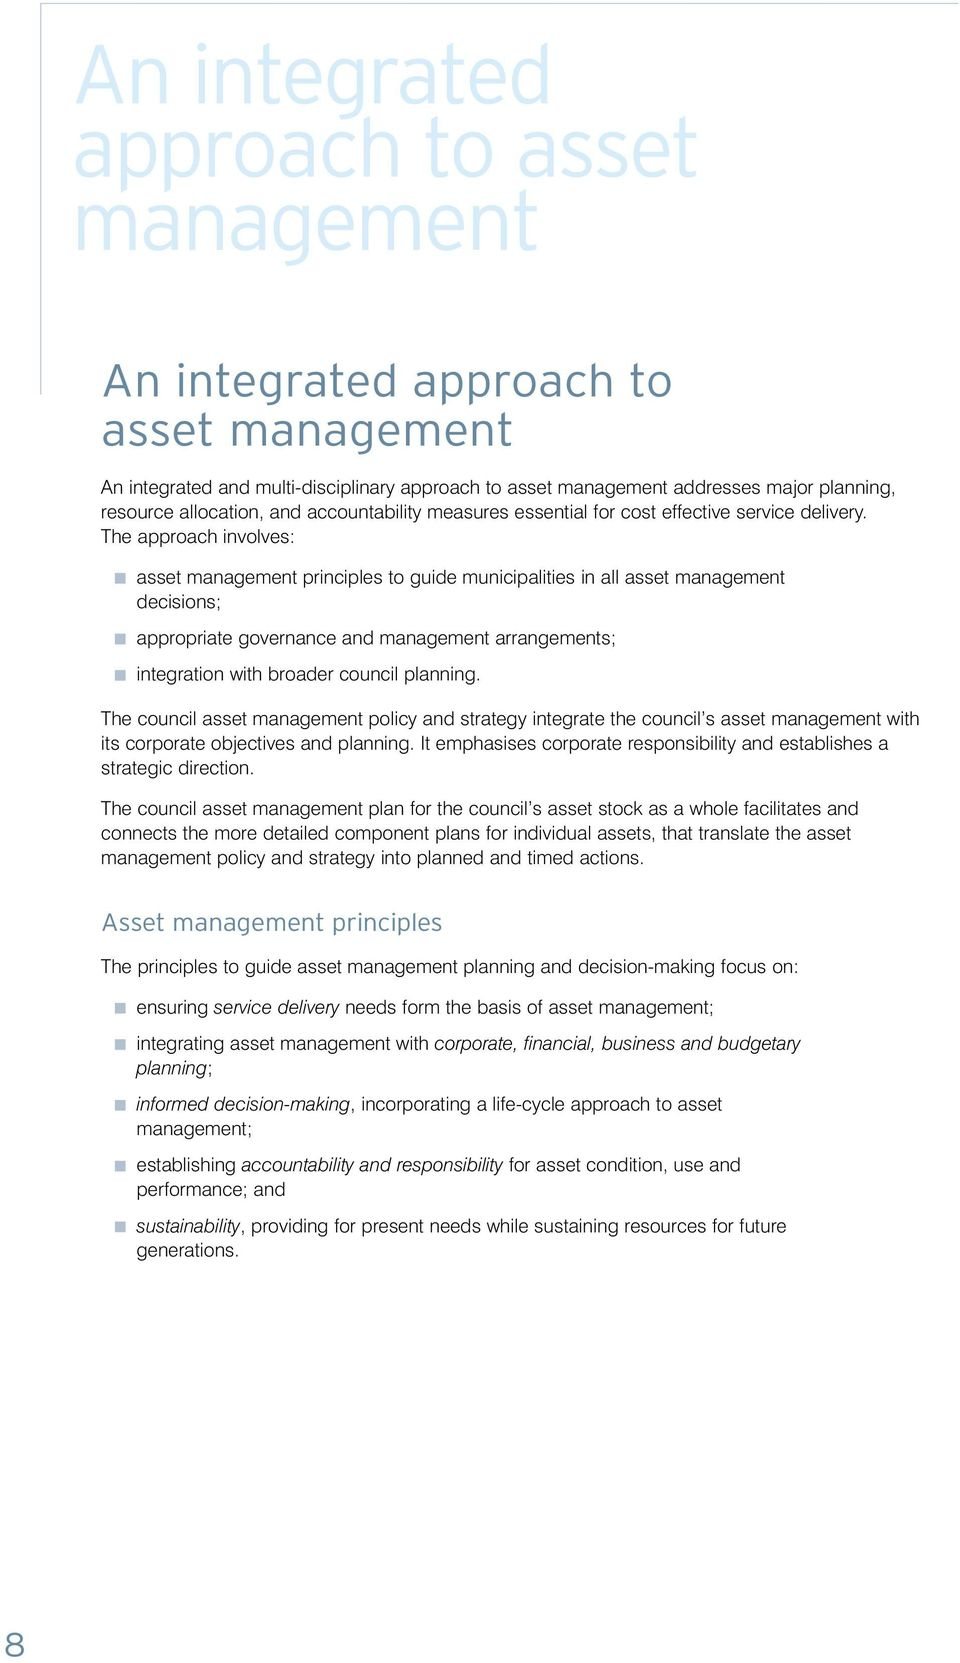 The approach involves: asset management principles to guide municipalities in all asset management decisions; appropriate governance and management arrangements; integration with broader council